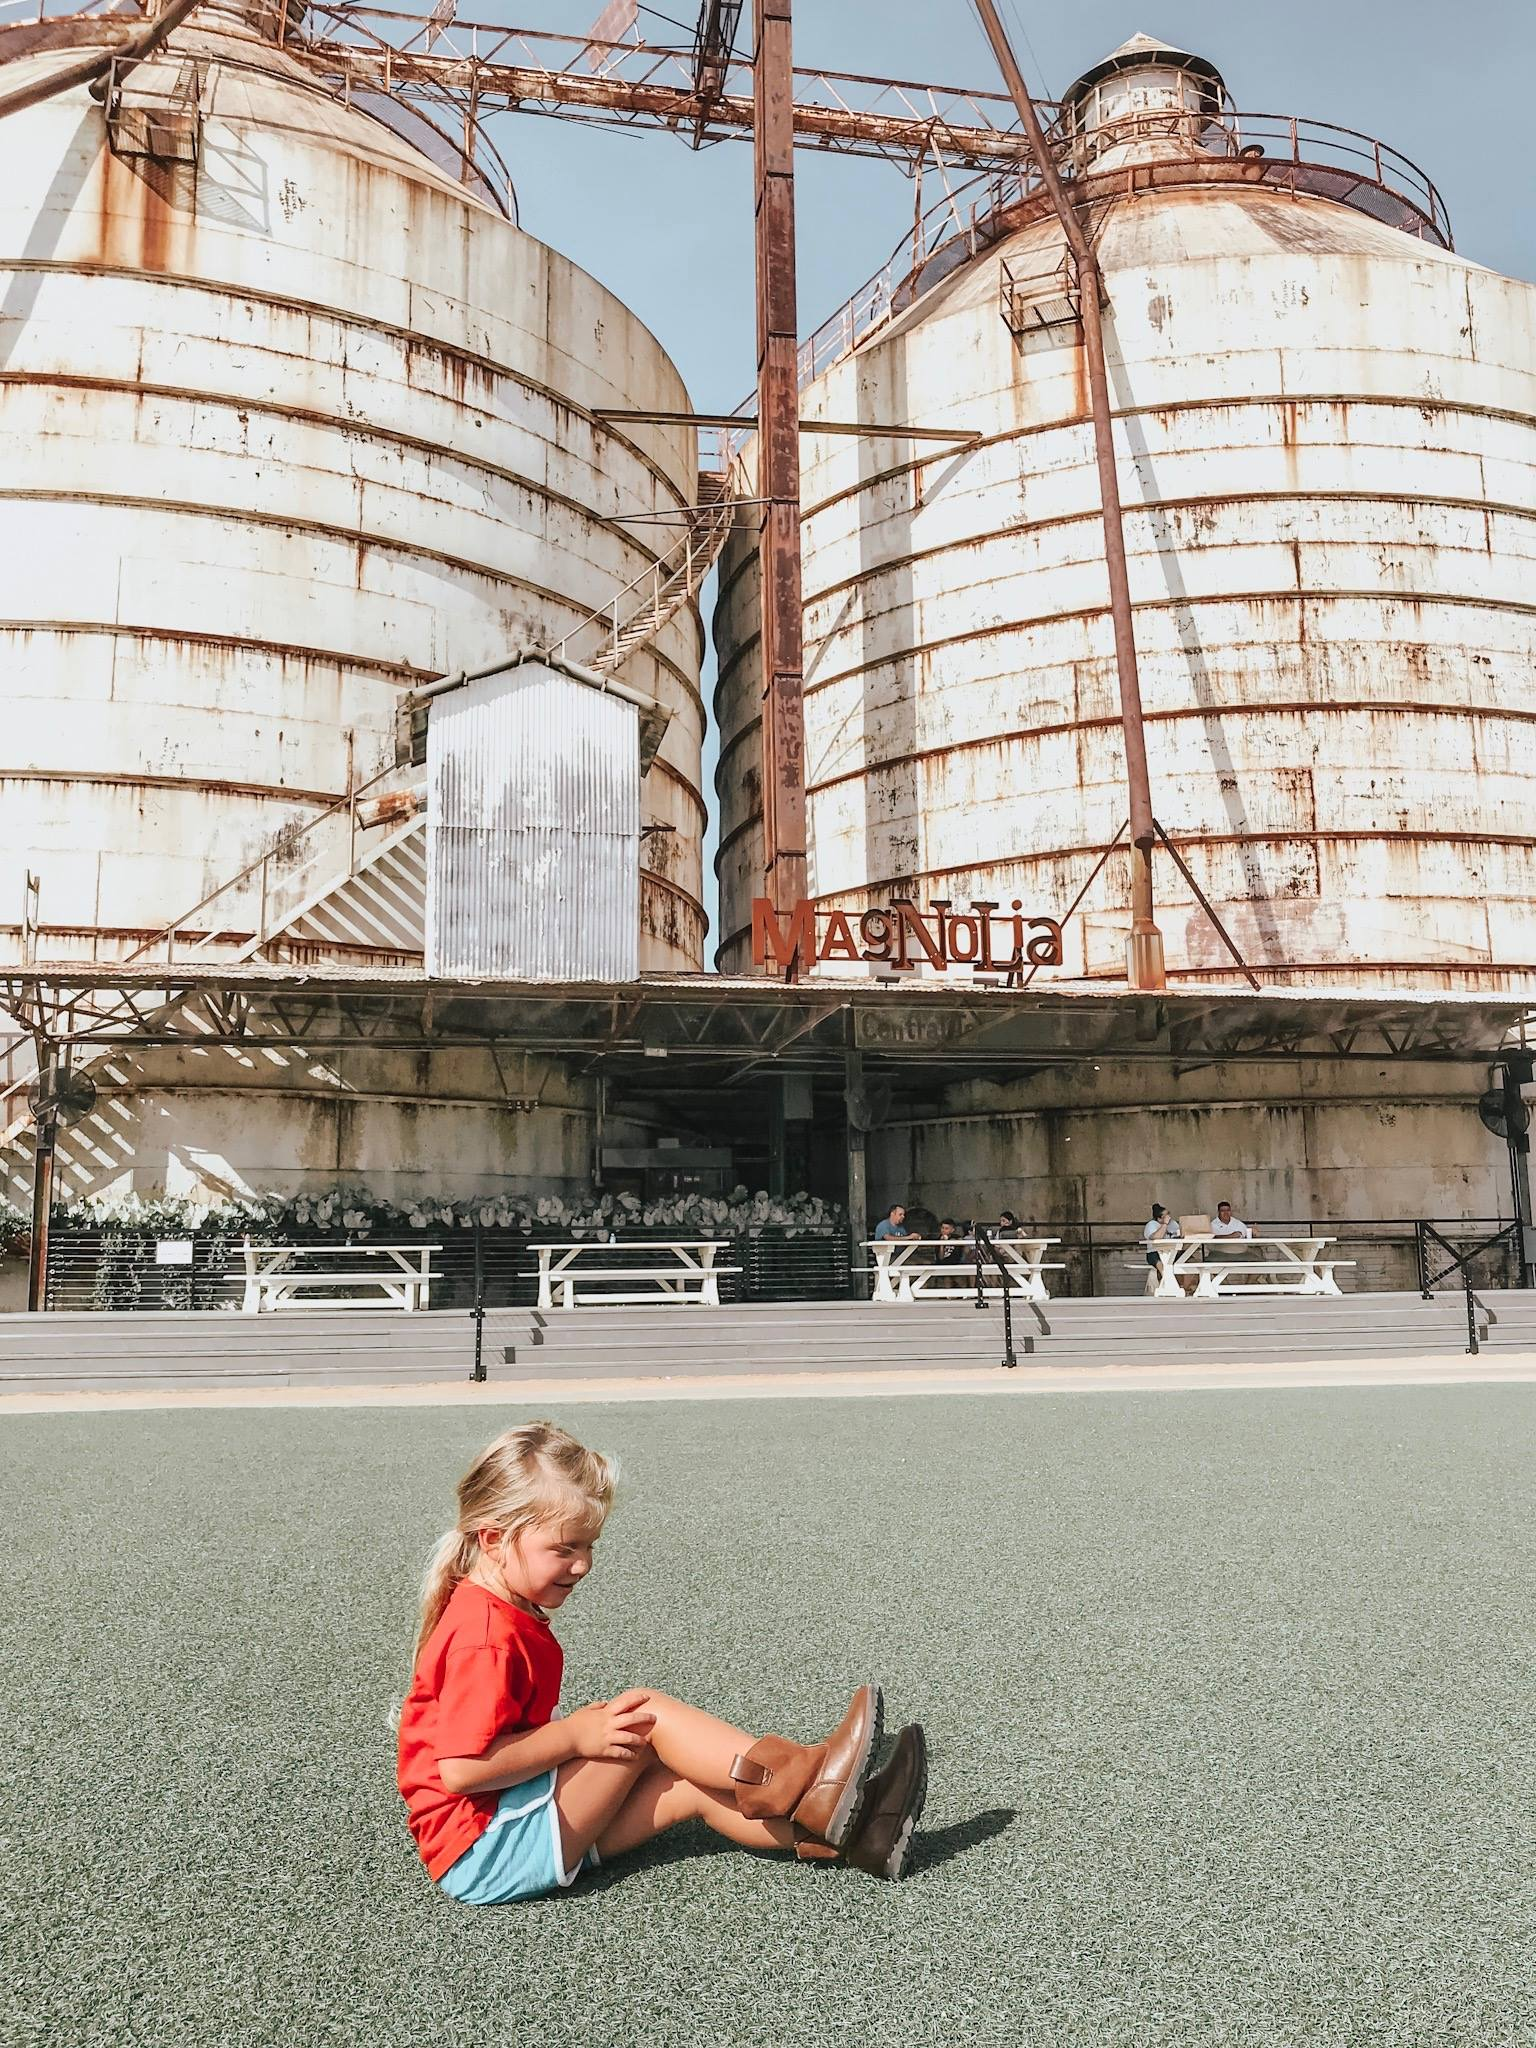 charletta in front of the famous silos -- she's already an instagram star!